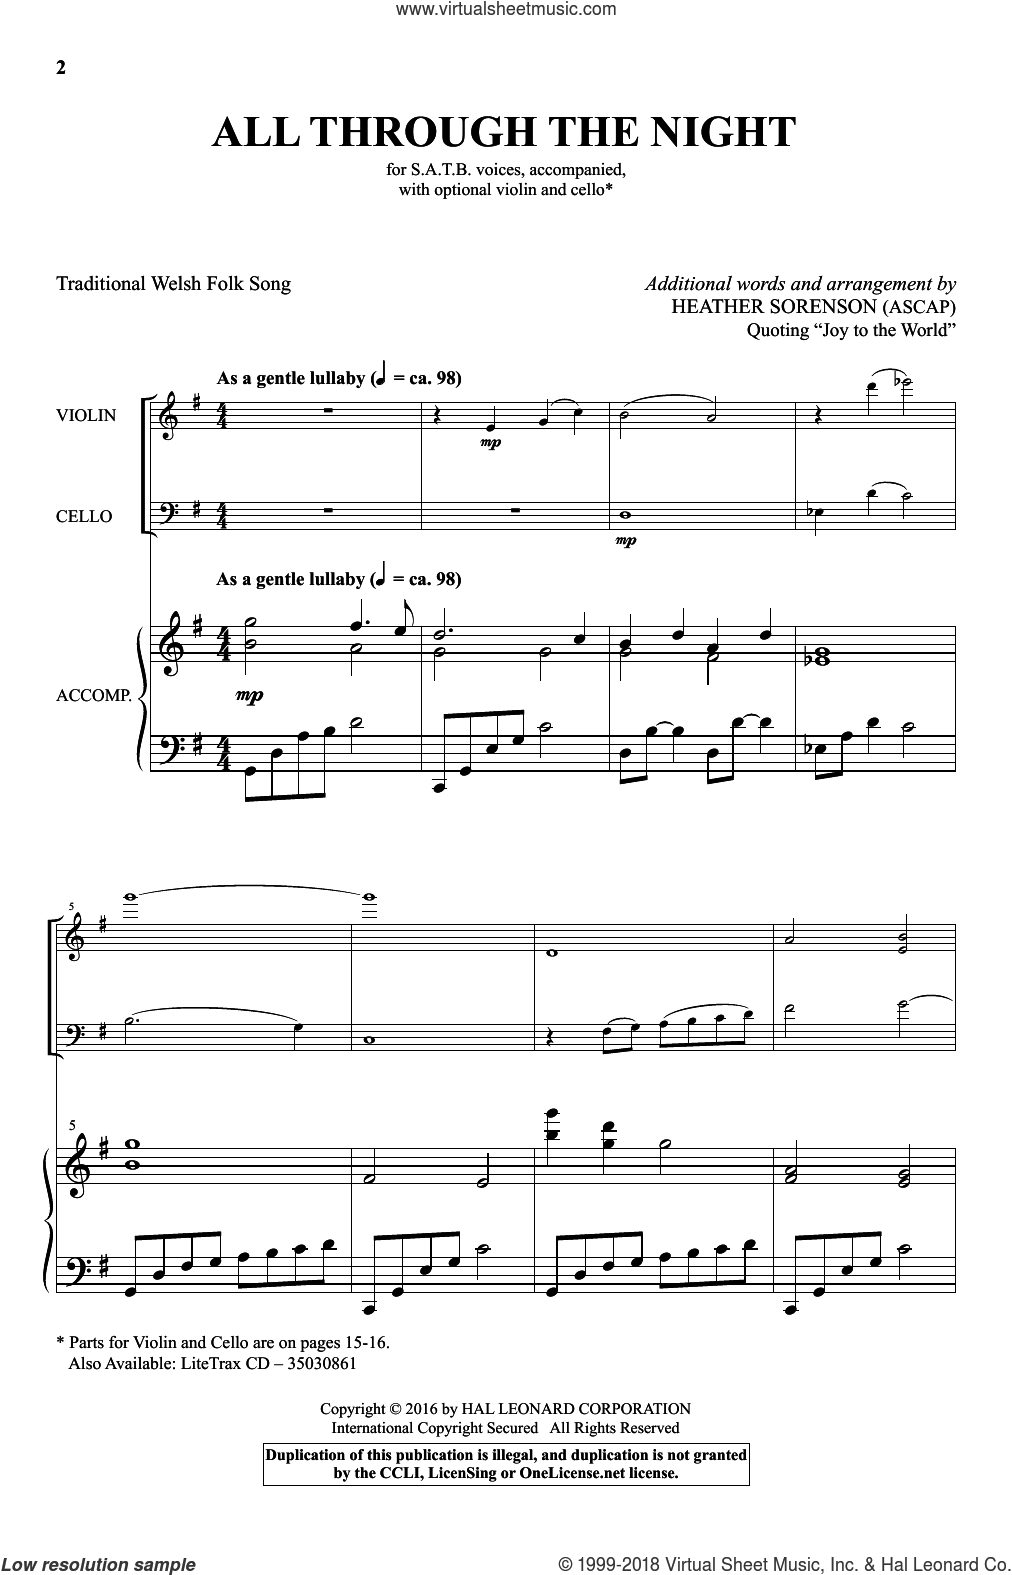 All Through The Night sheet music for choir  and Heather Sorenson. Score Image Preview.